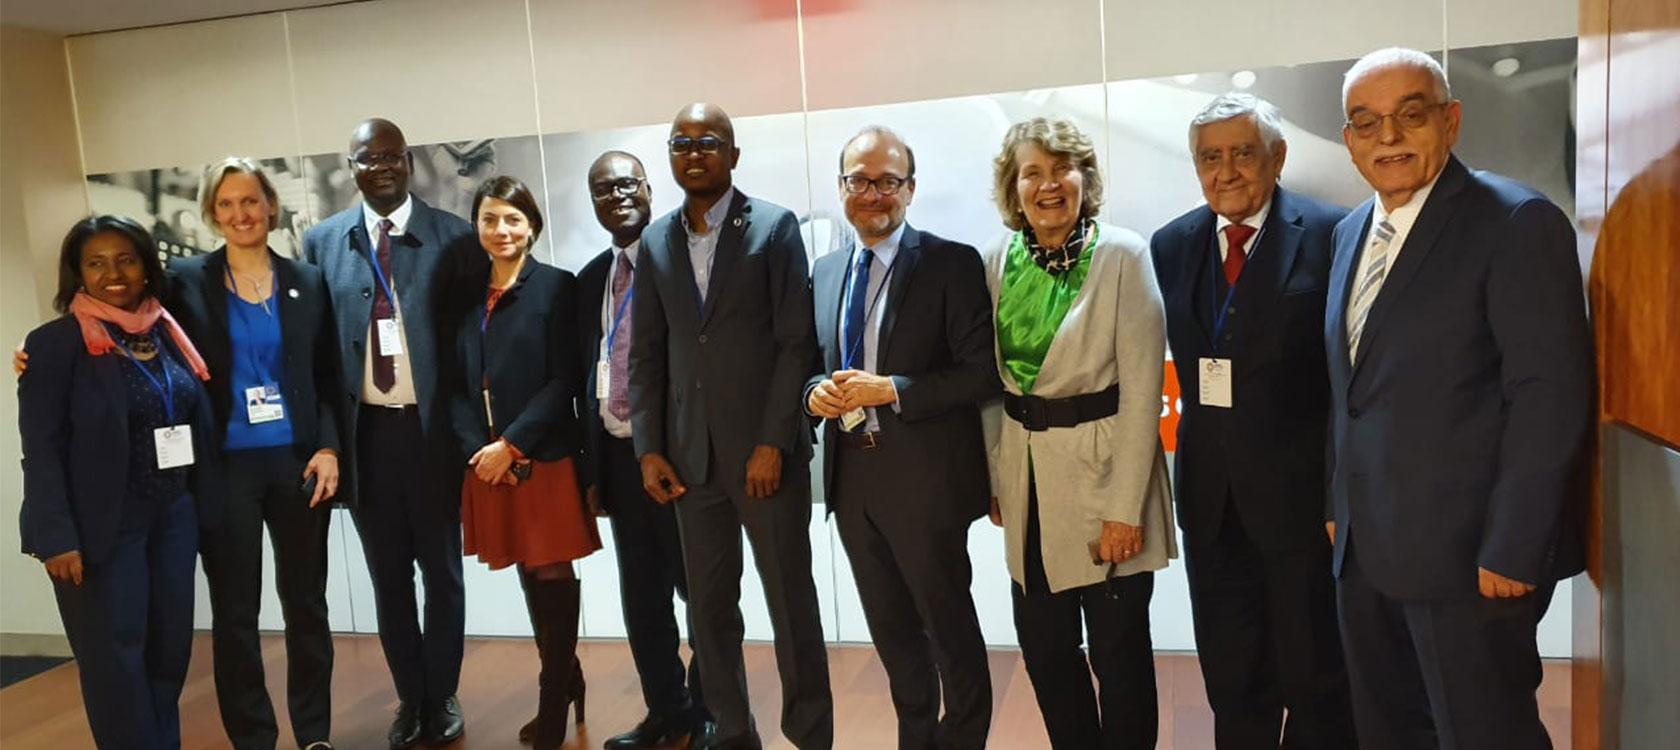 IDFC, Rémy Rioux (centre) with colleagues, Meeting with WFDFI